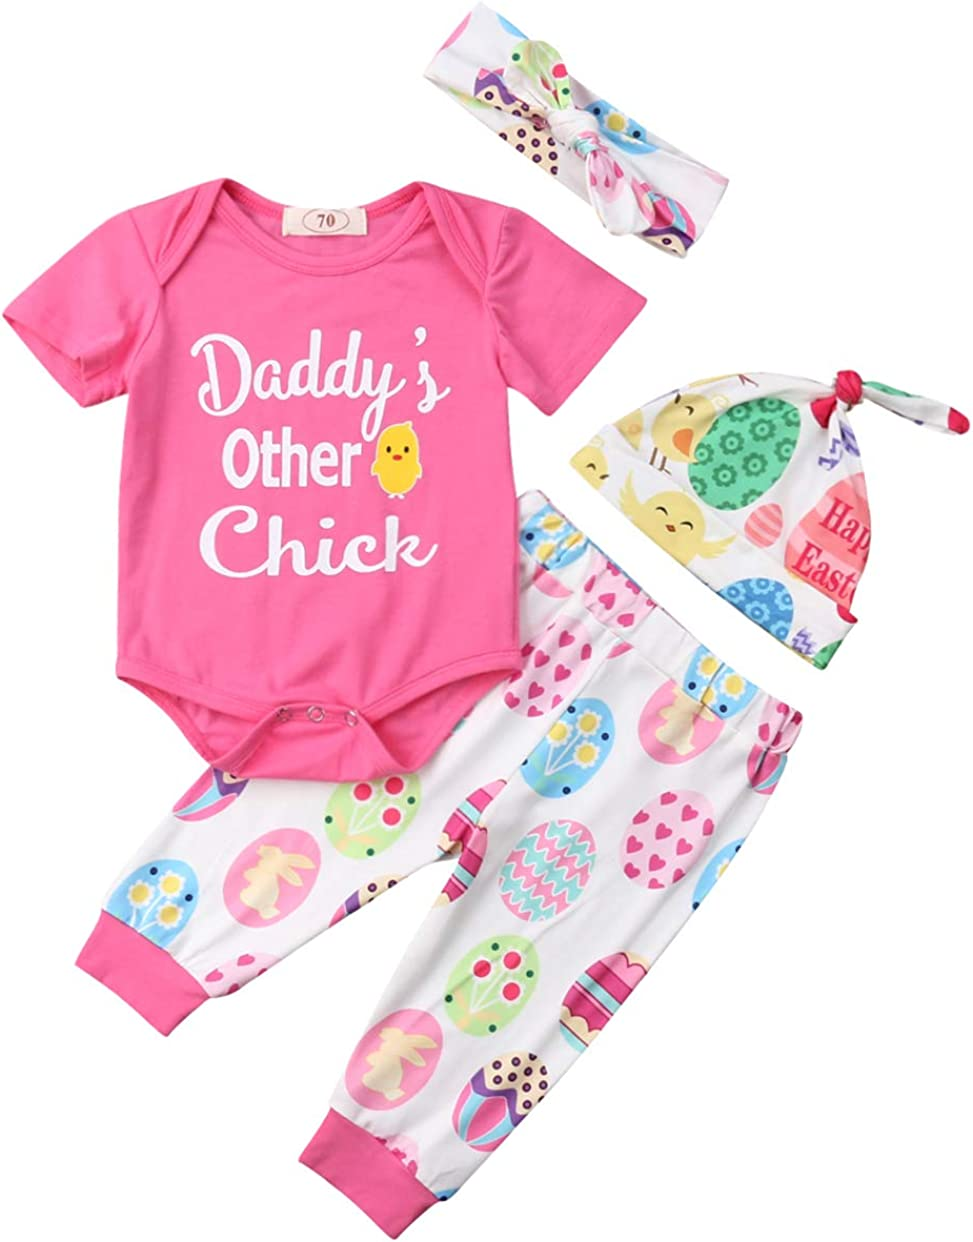 Baby Girl Easter Outfit 4 Pcs Set Daddy's Other Chick Romper Pant Headband Cap